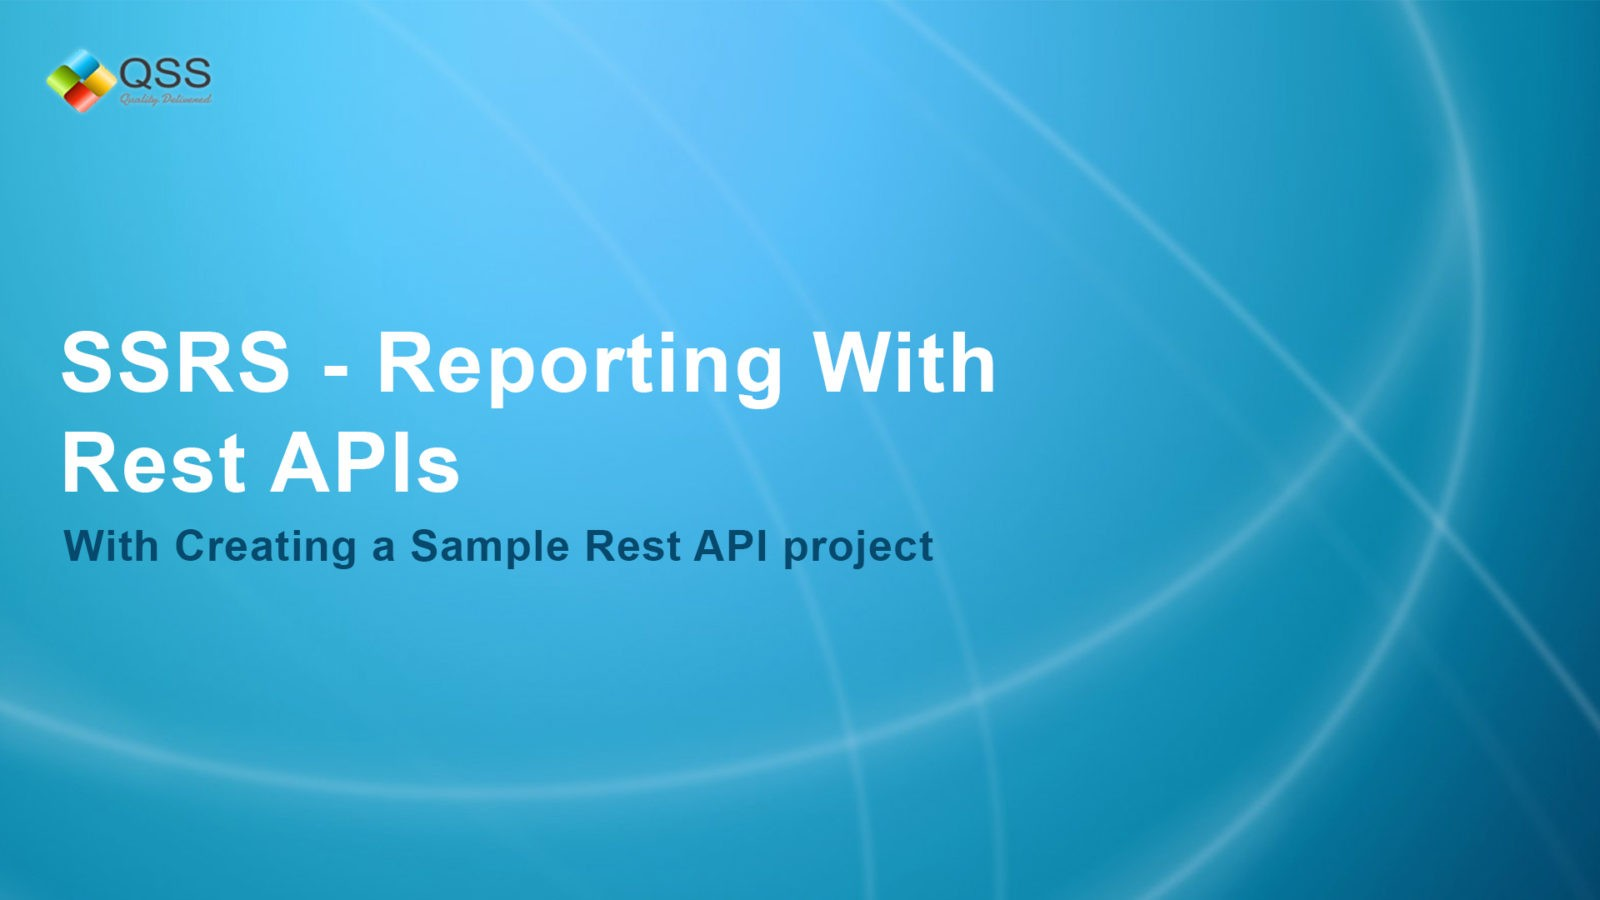 How to Perform SSRS - Reporting With Rest APIs?